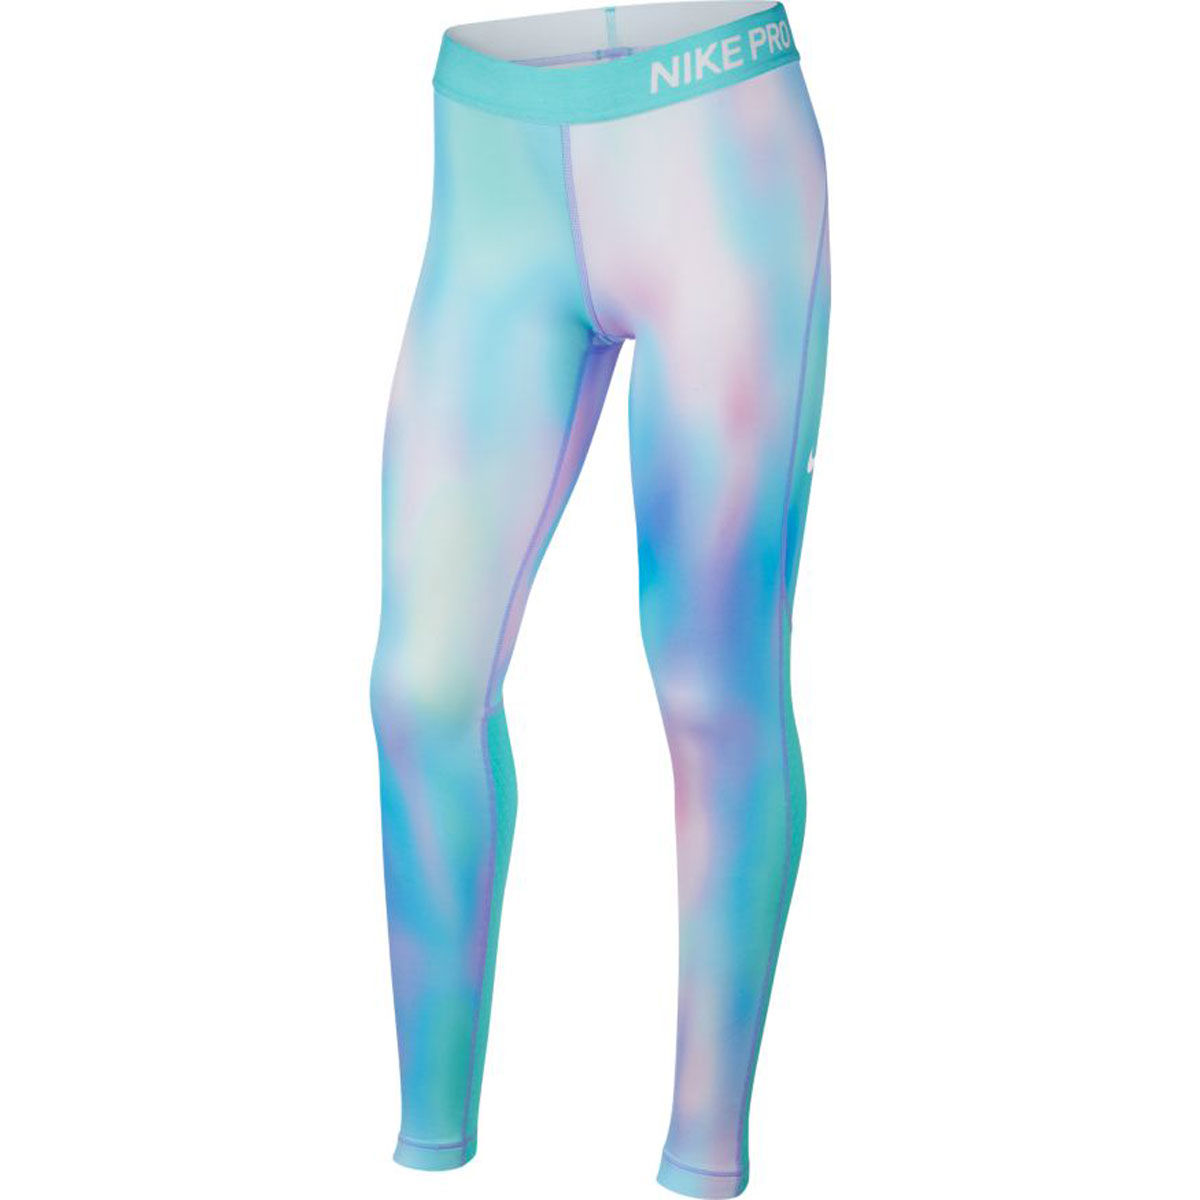 Nike Pro Warm Girls Printed Tights